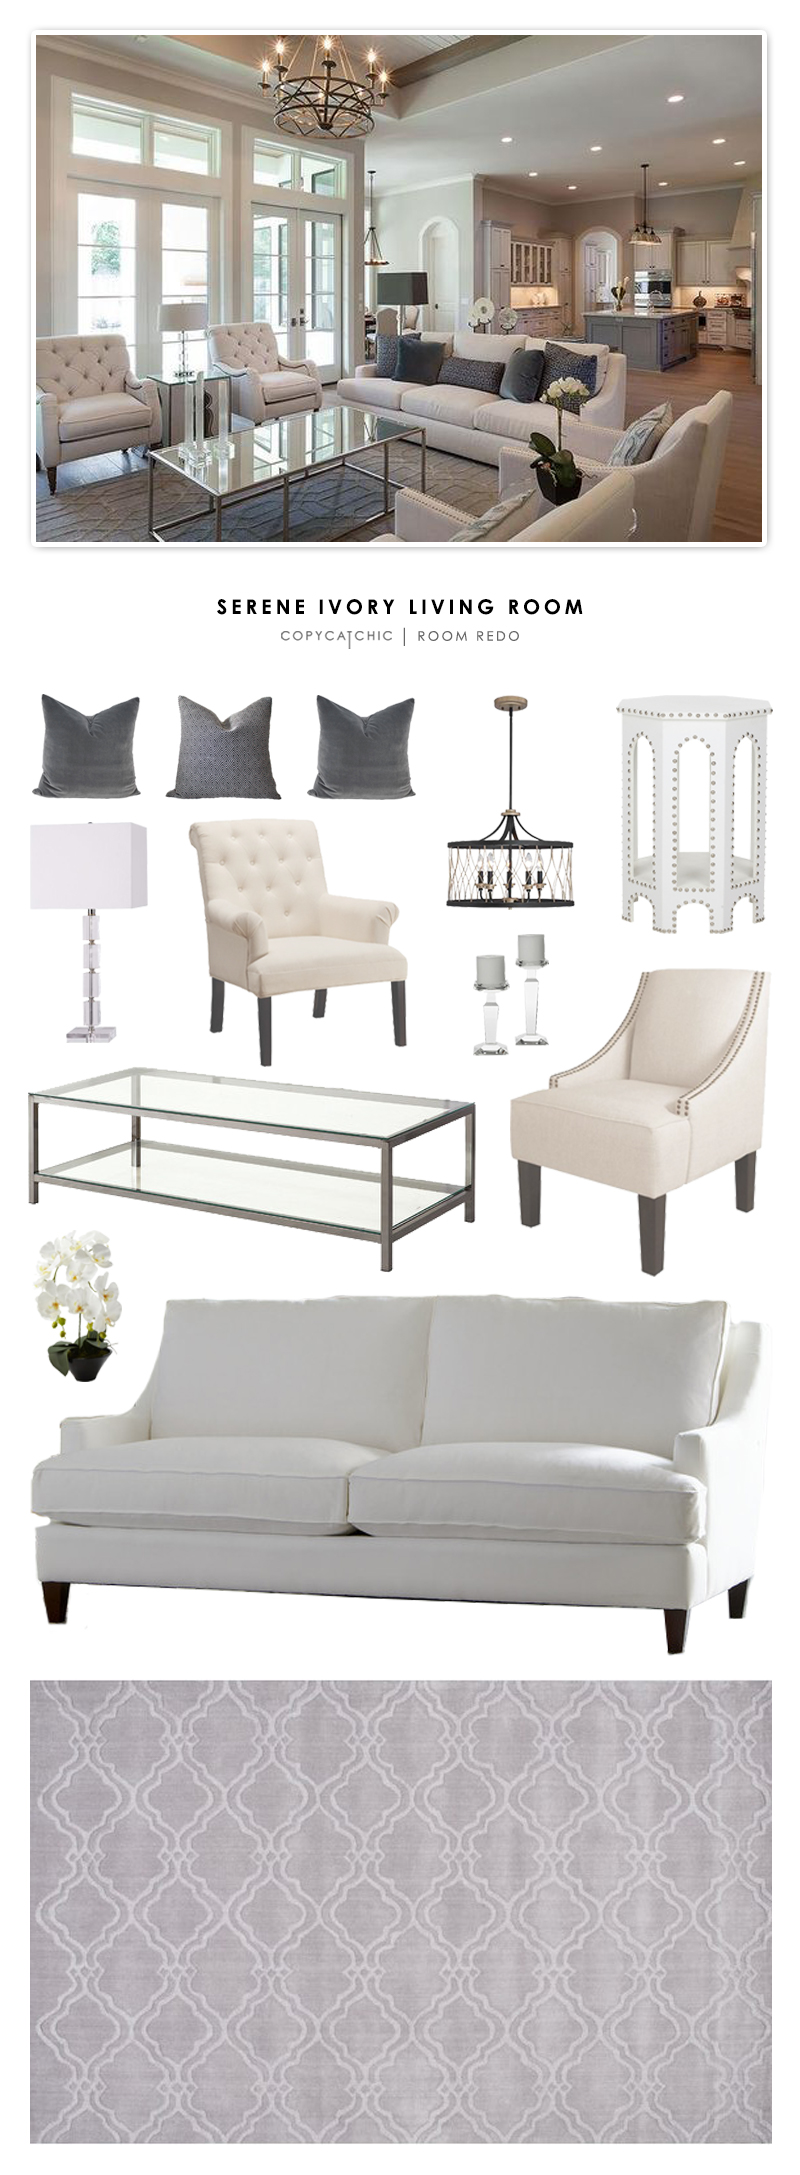 copy cat chic room redo serene ivory living room copy cat chic bloglovin. Black Bedroom Furniture Sets. Home Design Ideas